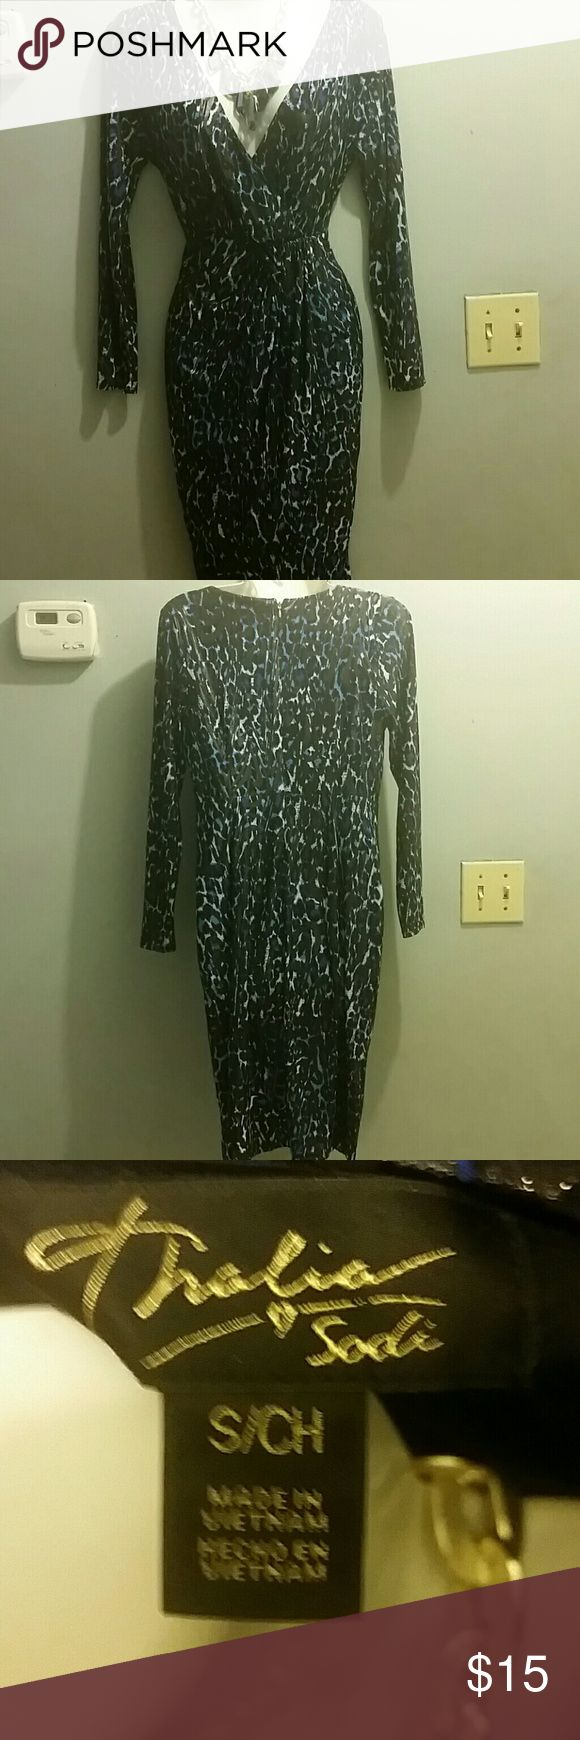 Dress Only worn once thalia sodia Dresses Long Sleeve